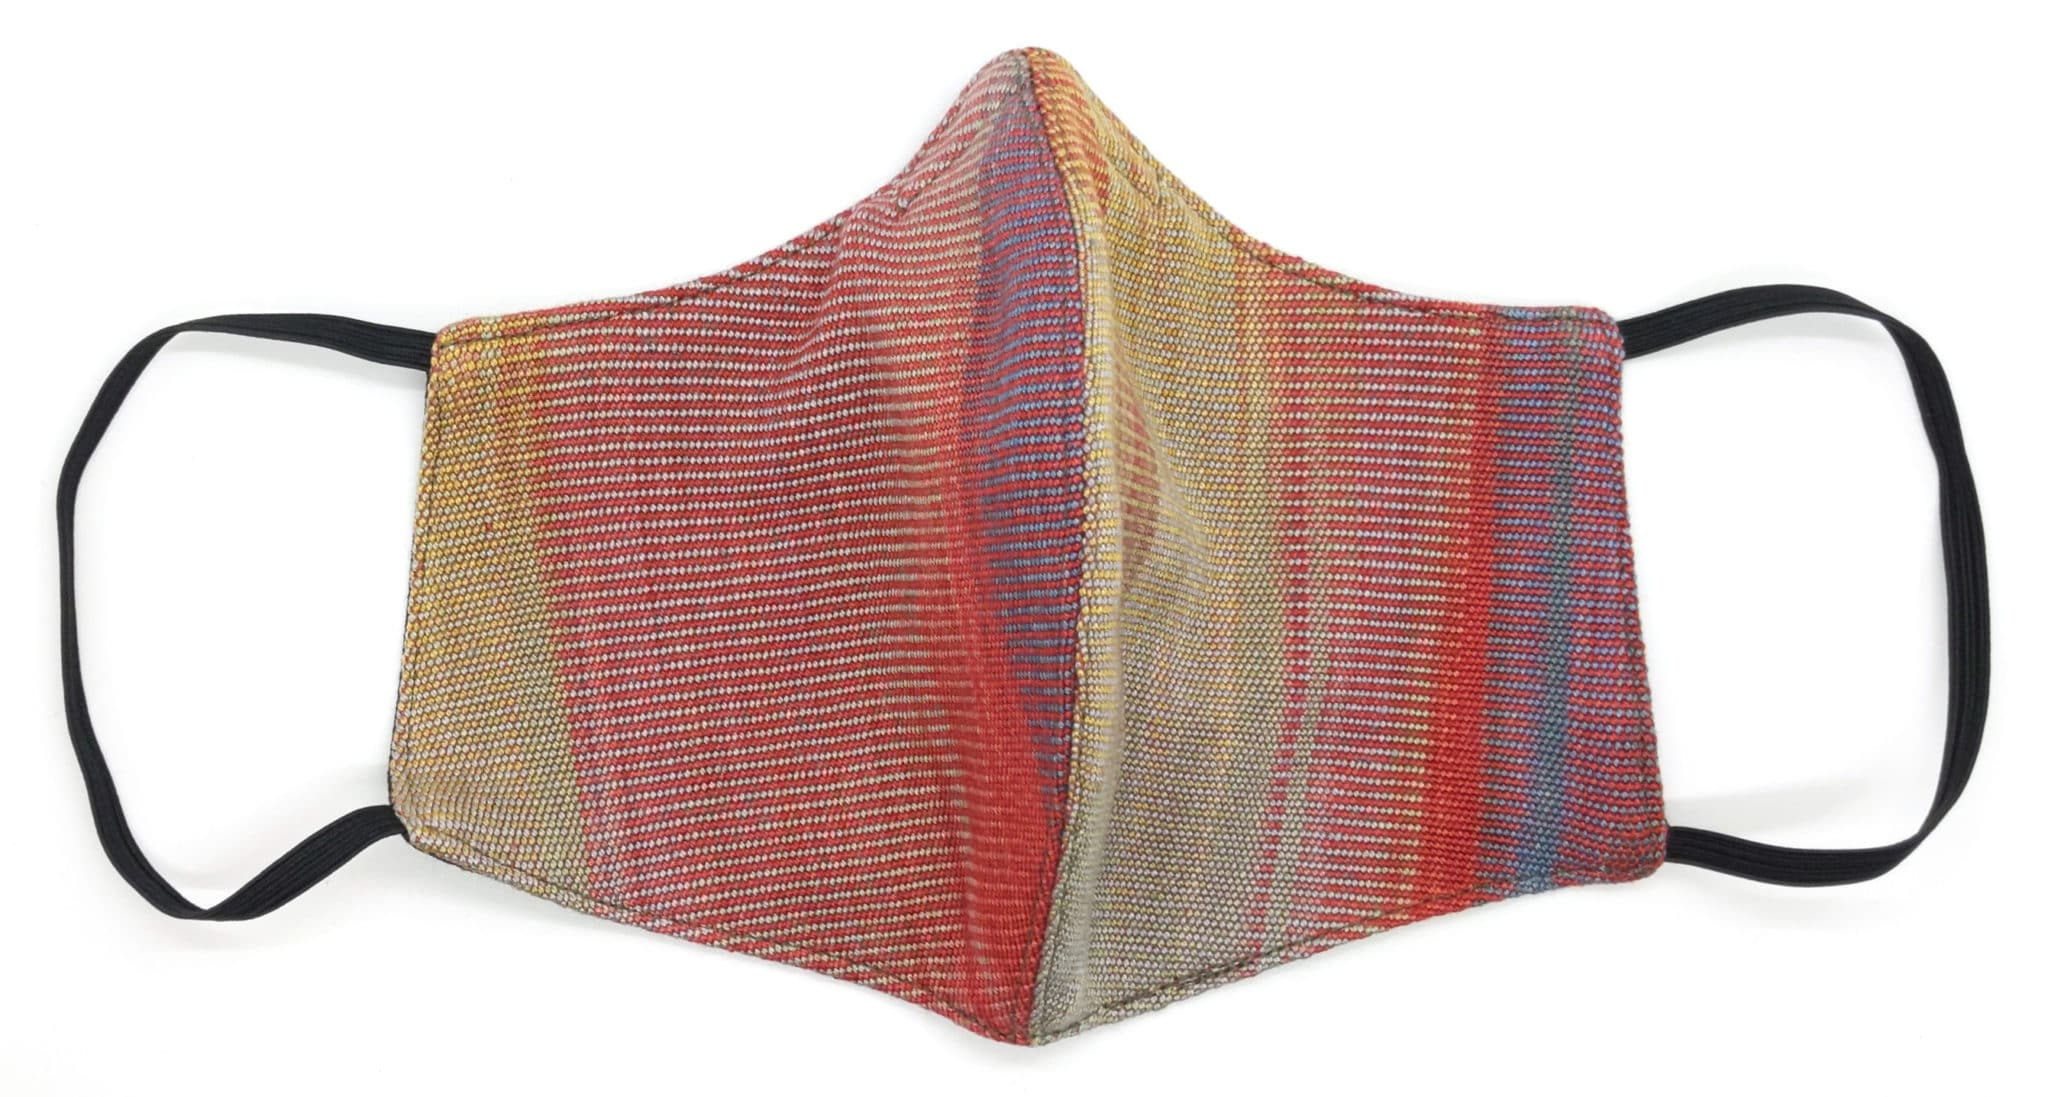 Handwoven Lightweight Bamboo Face Mask with Metal at Bridge of Nose - Red, Gray, Blue, Gold